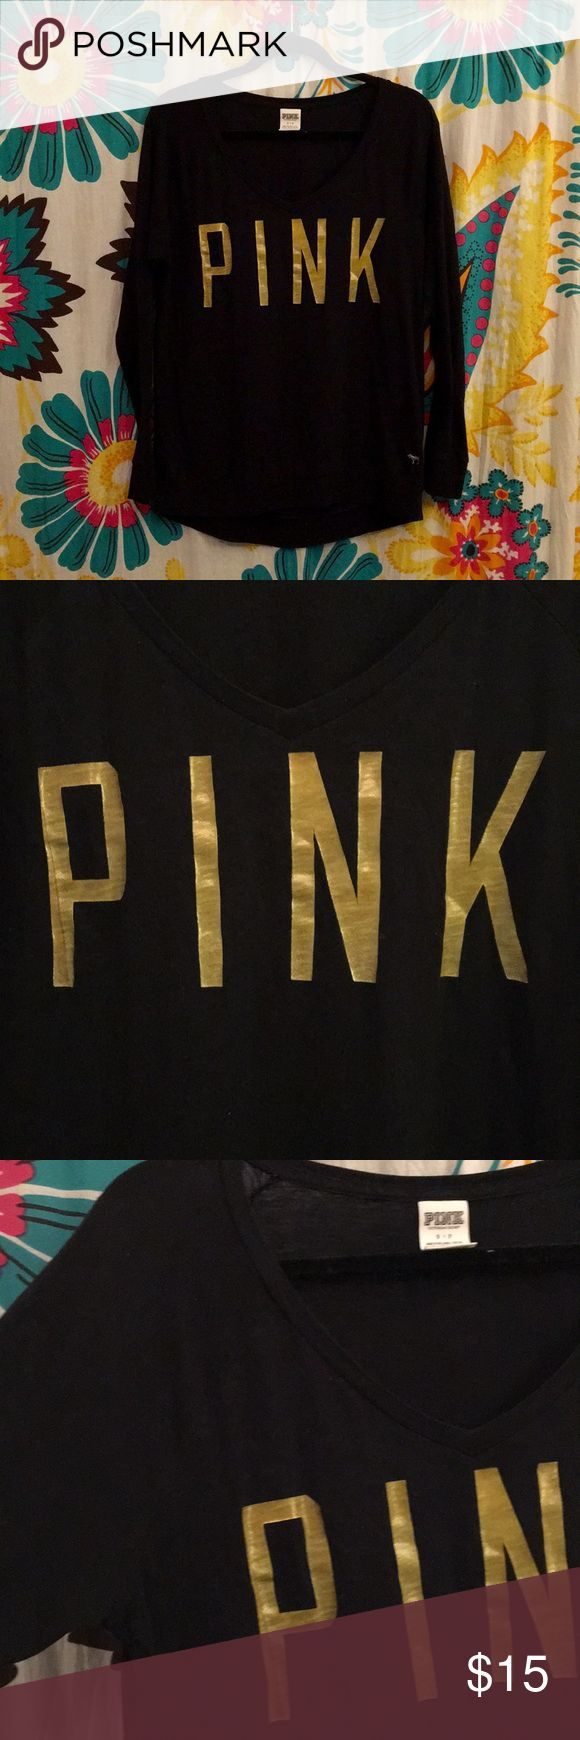 VS PINK Long Sleeve V-Neck Tee VS PINK long sleeve v-neck t-shirt. Black with yellow-gold lettering. Slouchy, oversized fit. Good condition. Some fuzzies and hairs stuck to it and some minor pilling throughout. No stains or holes. Make an offer! 😊 PINK Victoria's Secret Tops Tees - Long Sleeve